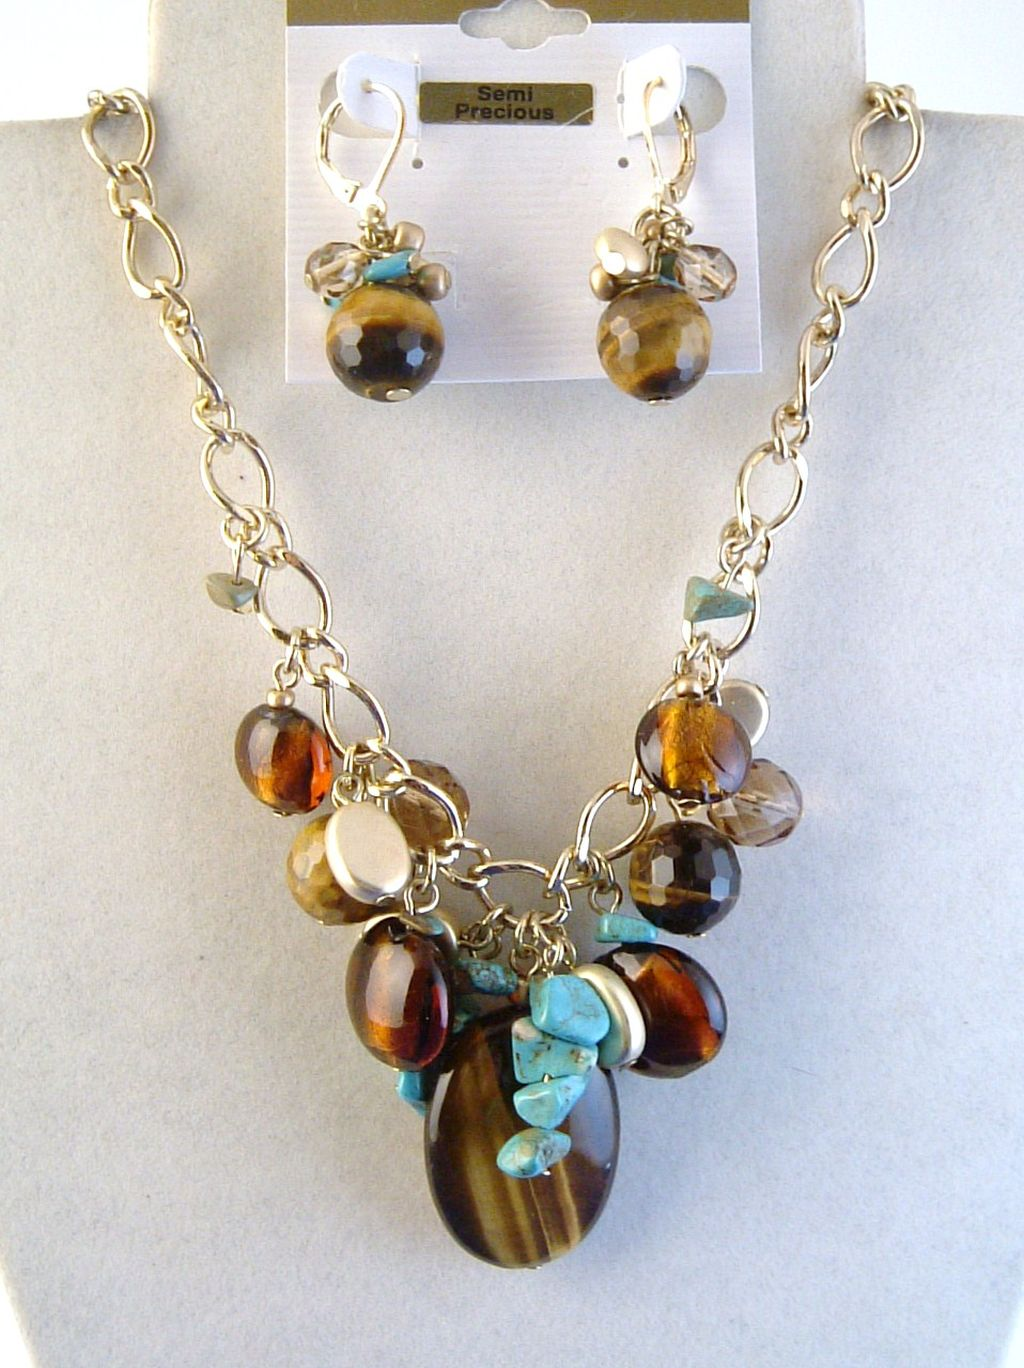 Tiger Eye Pendant Turquoise Multi-Dangle Charms Necklace Earrings Jewelry Set